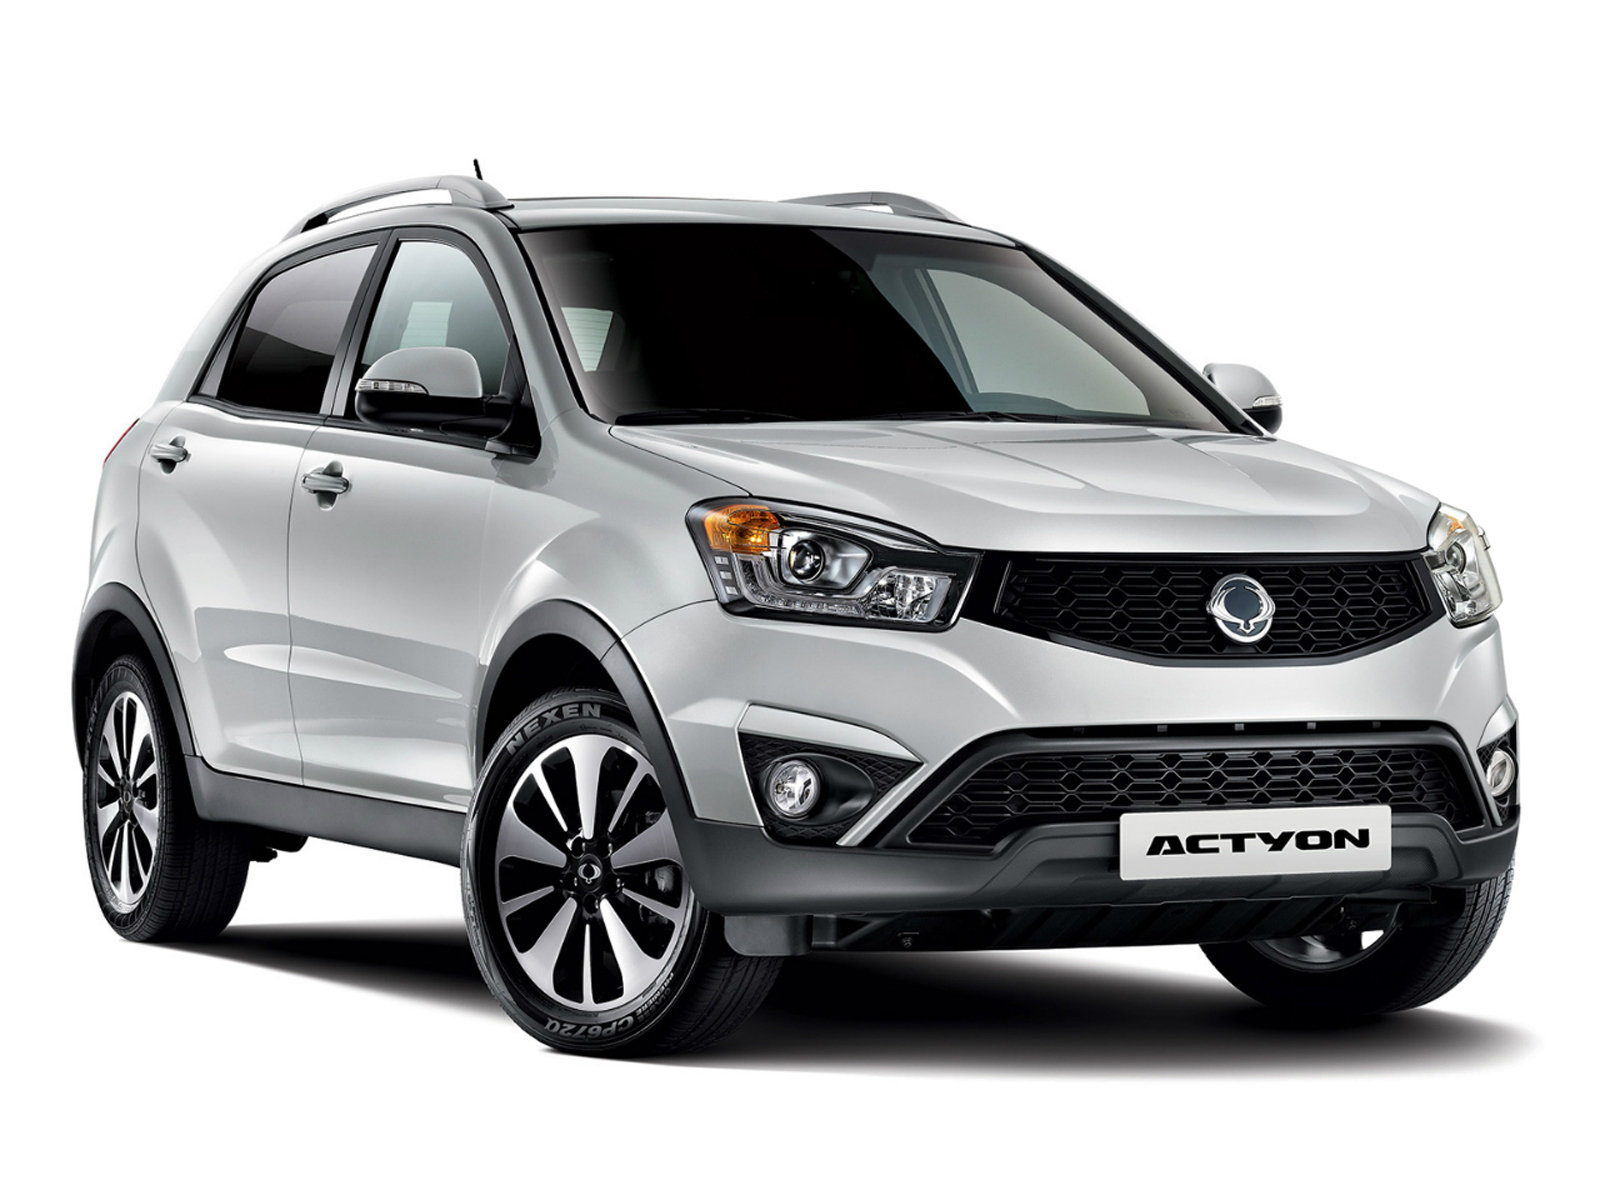 ssangyong actyon pics